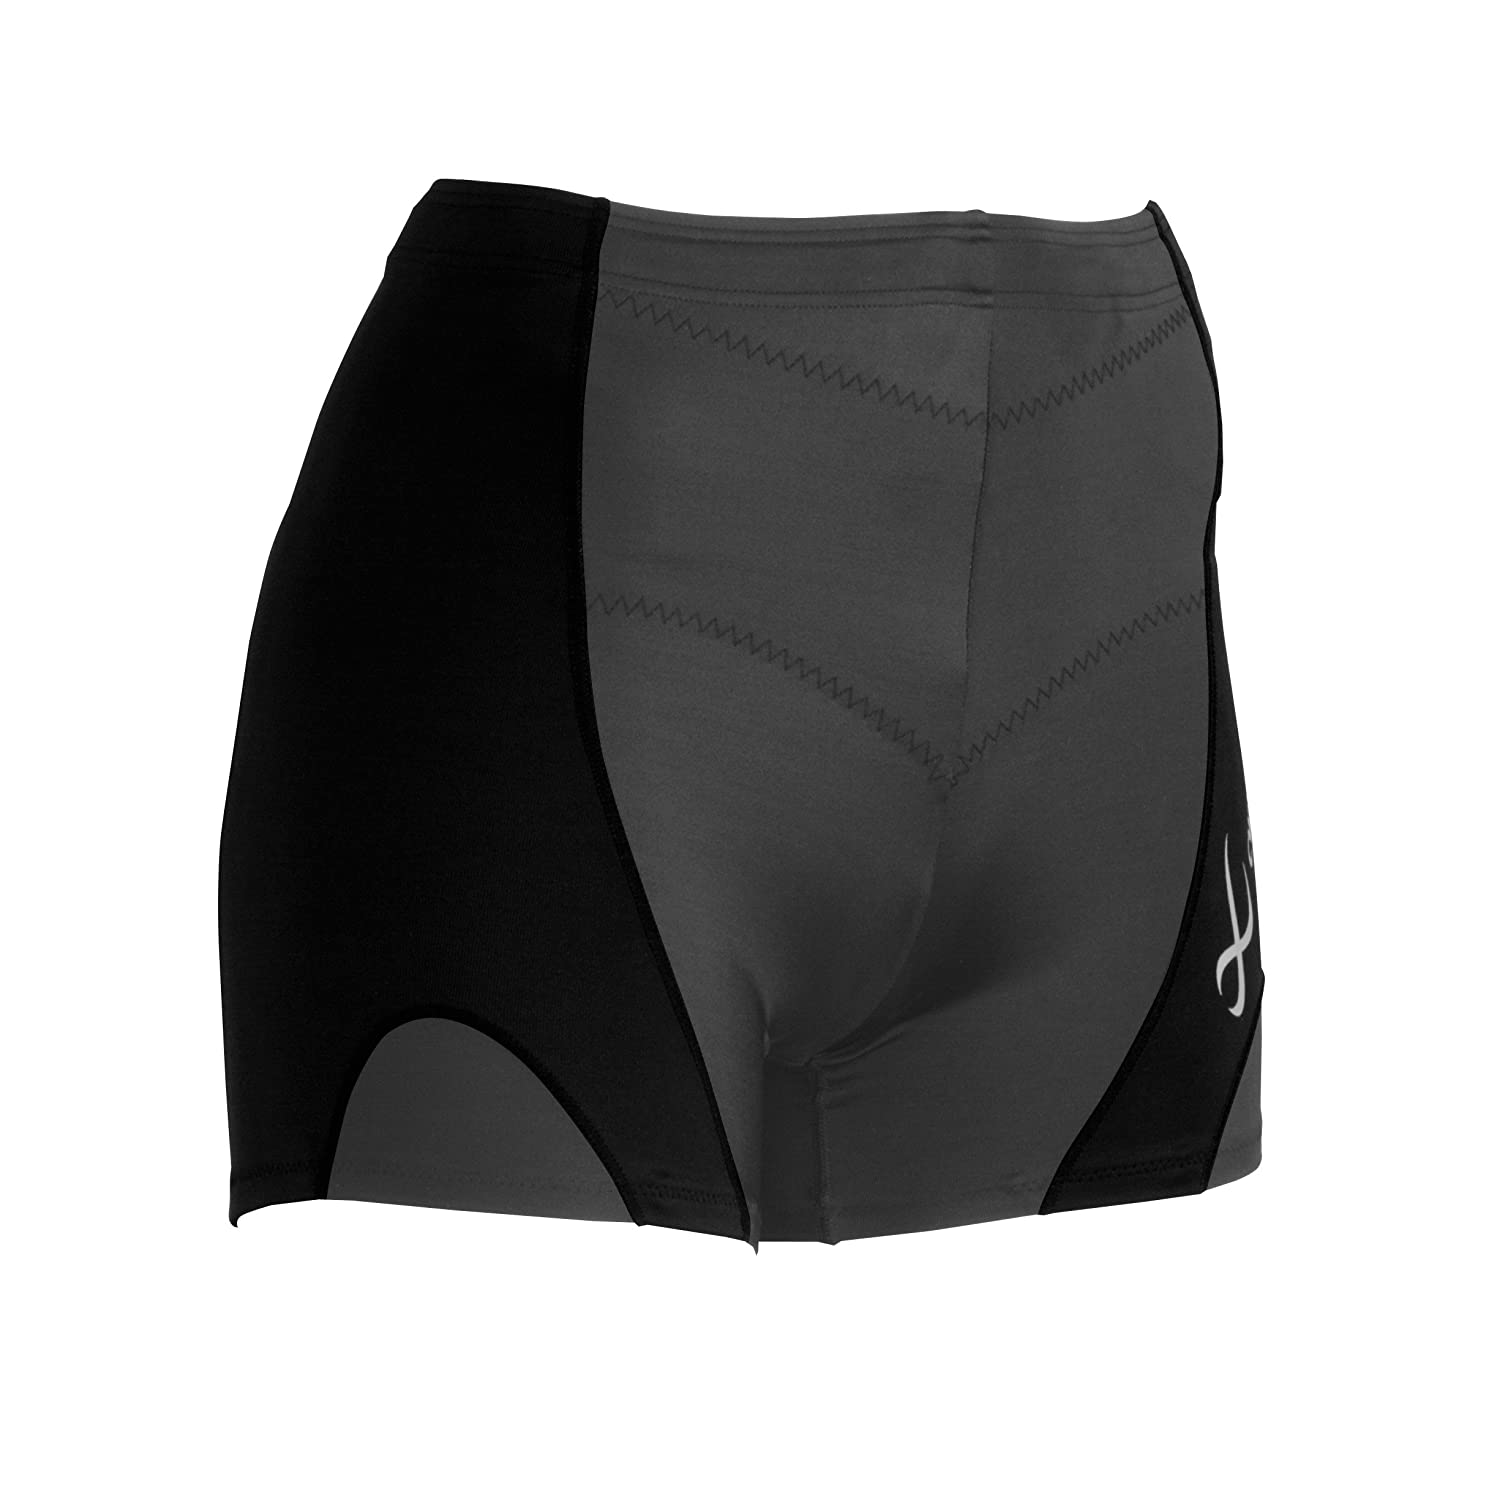 CW-X Women's Muscle Support Endurance Pro 4 Compression Training Short CW-X Apparel Womens 140803